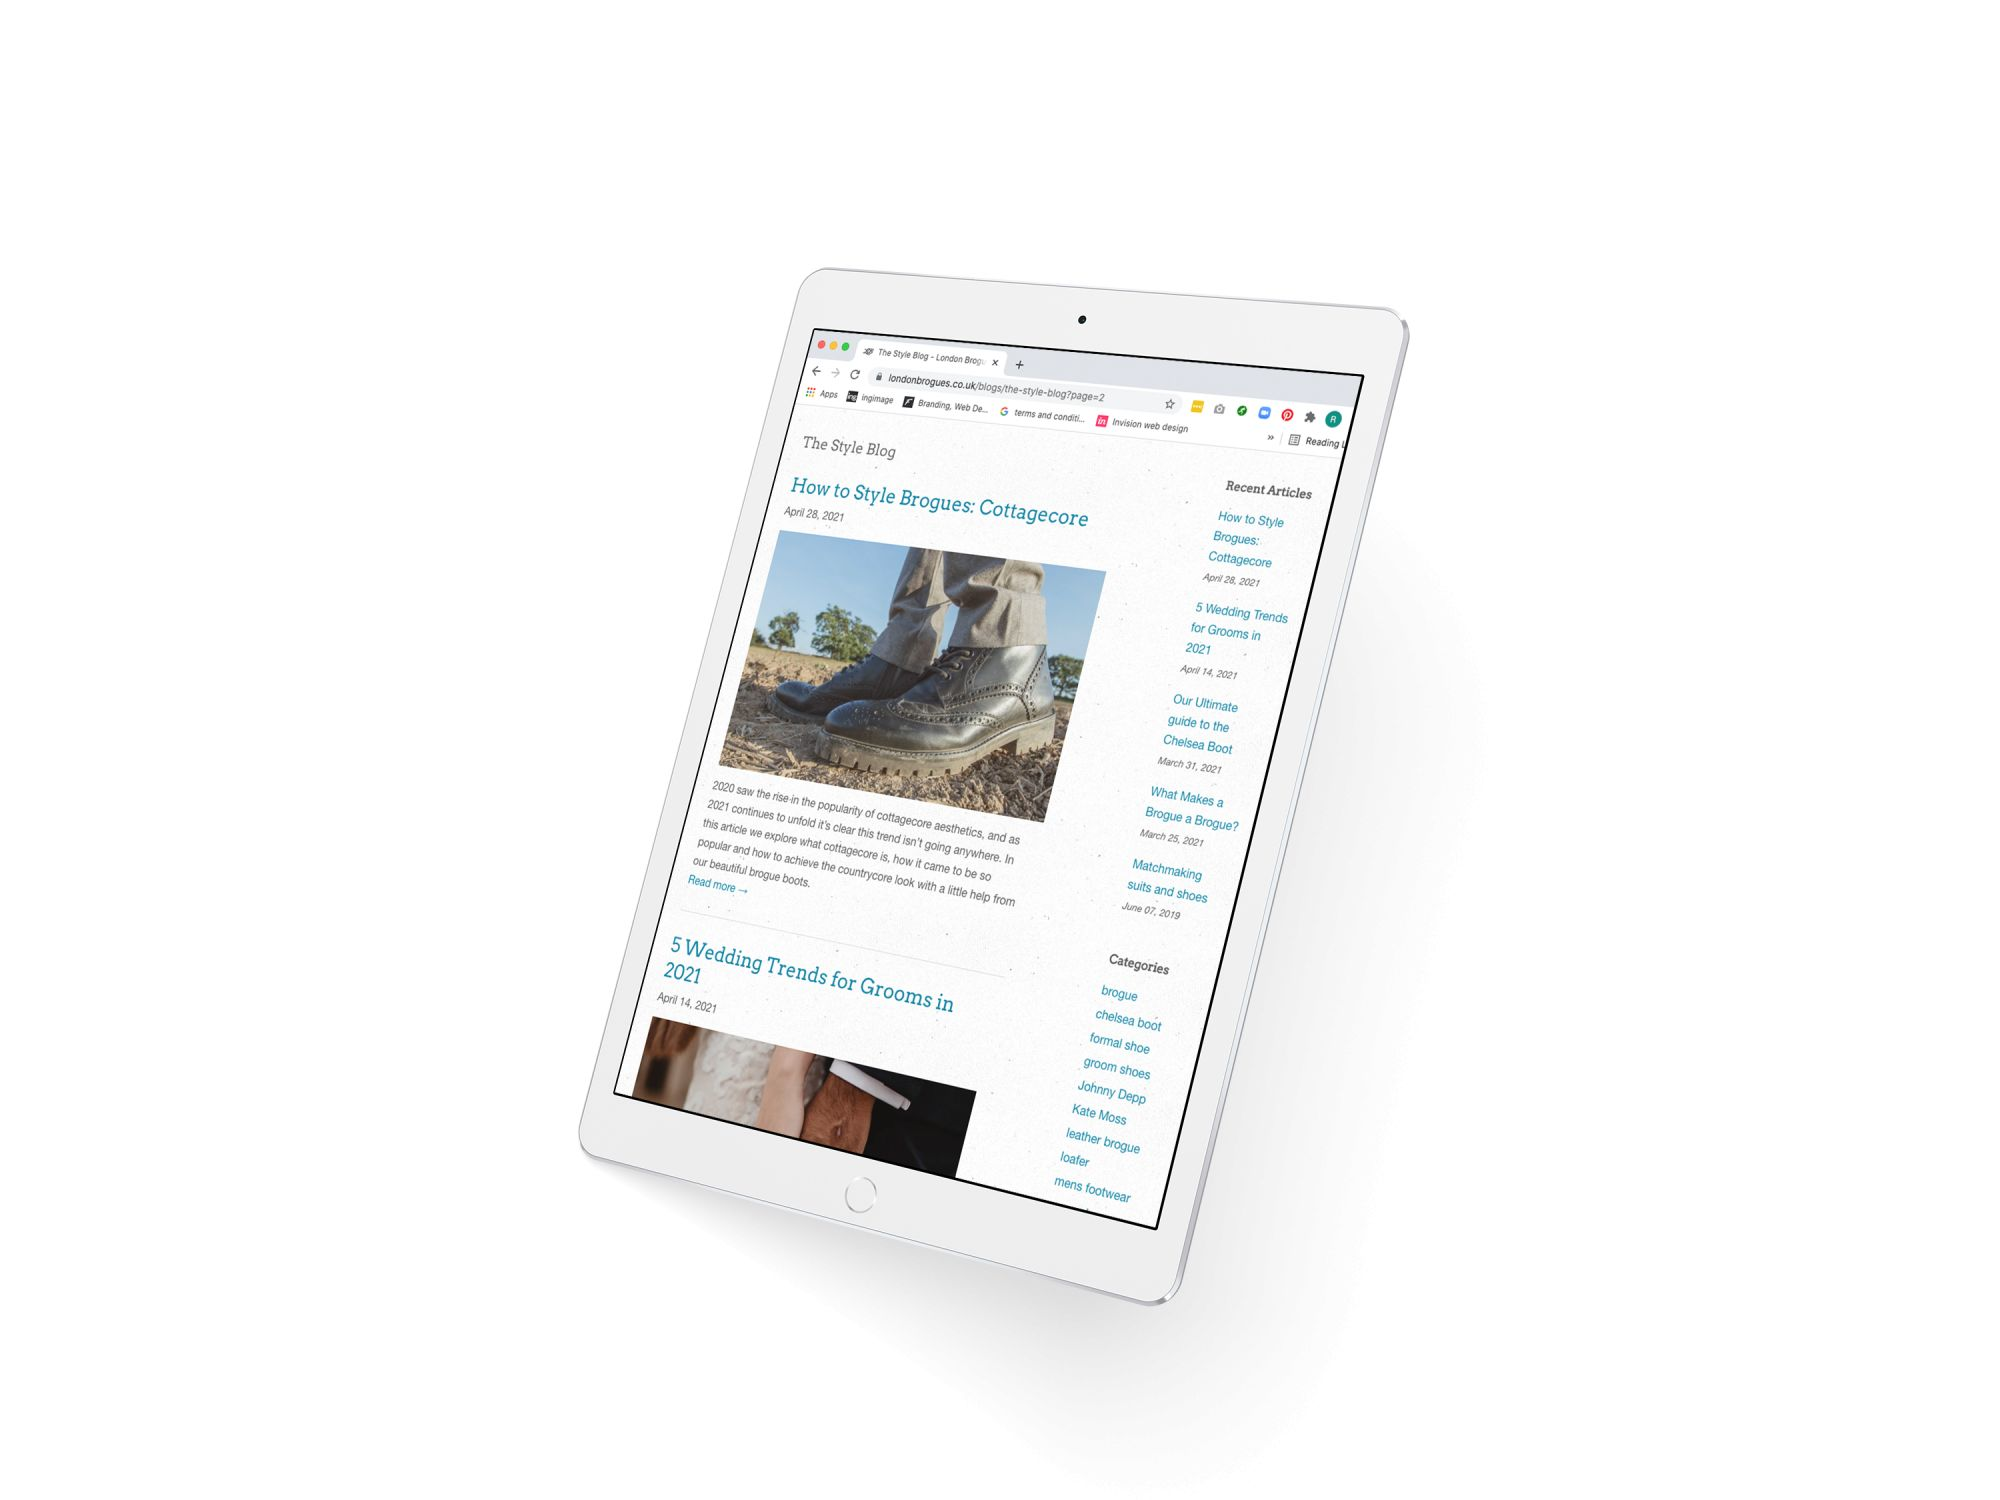 A white IPad with a blog landing page for London brogues visible